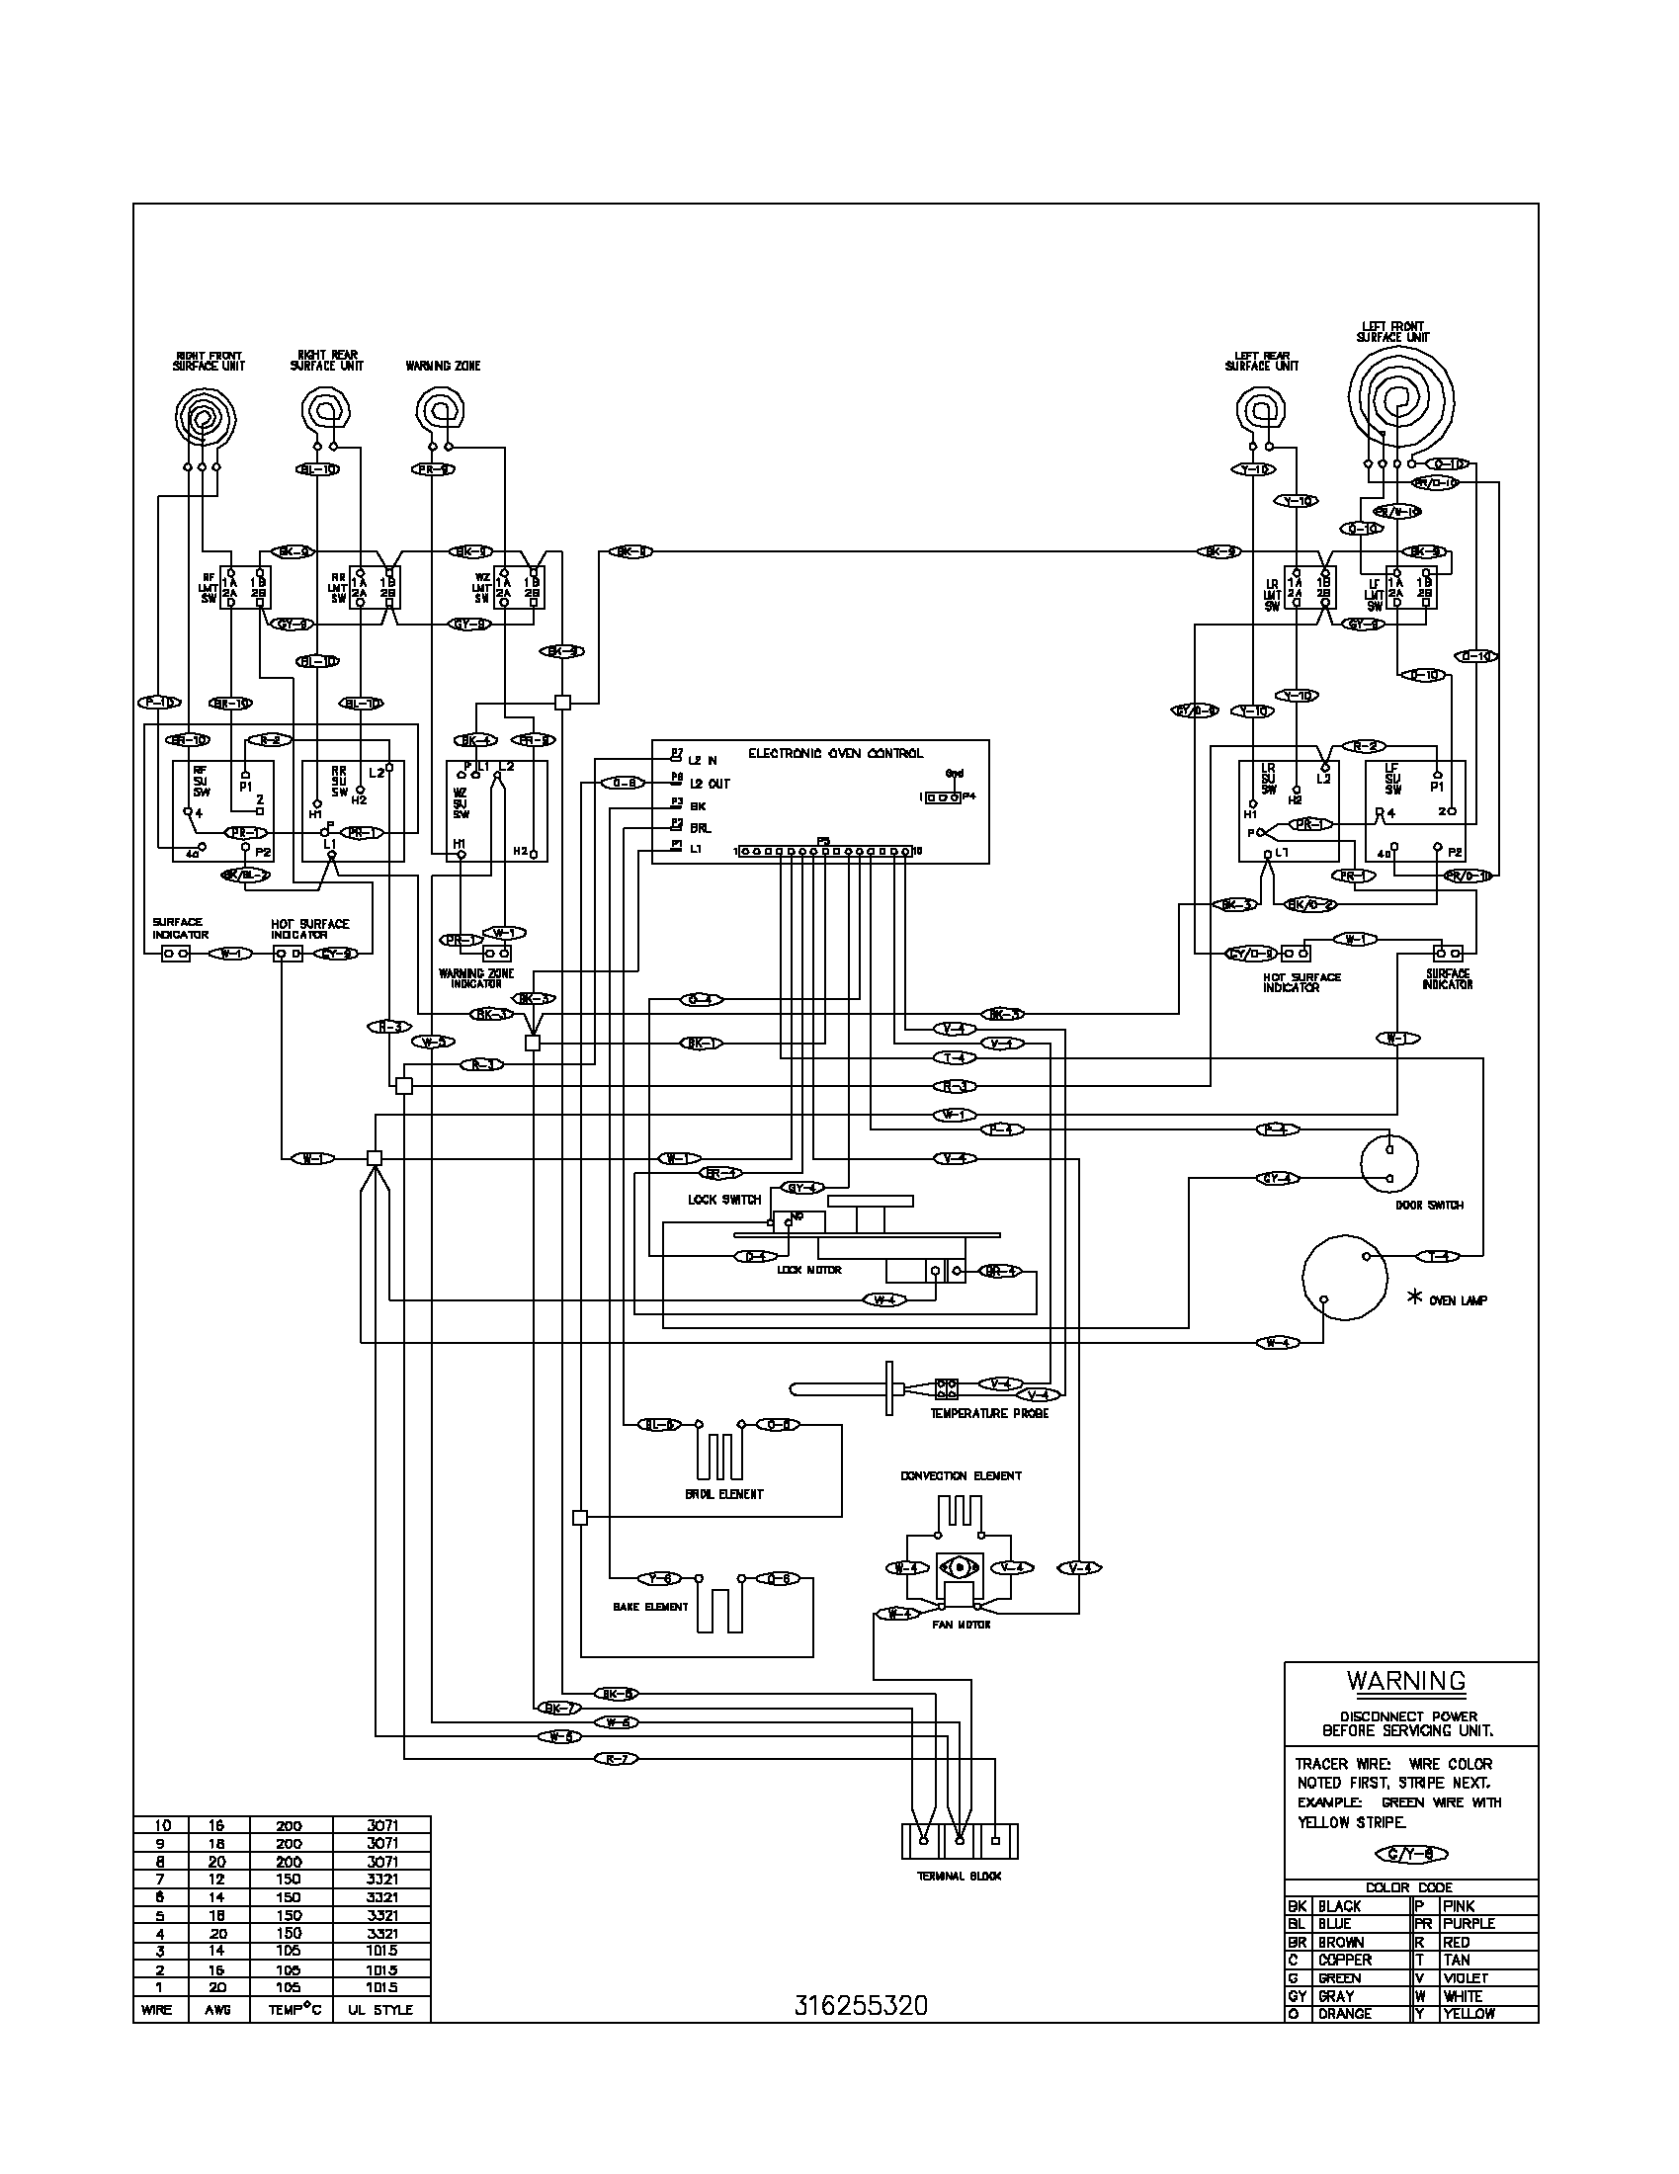 electric oven wiring diagram electric image wiring ge electric oven wiring diagram wiring diagram on electric oven wiring diagram